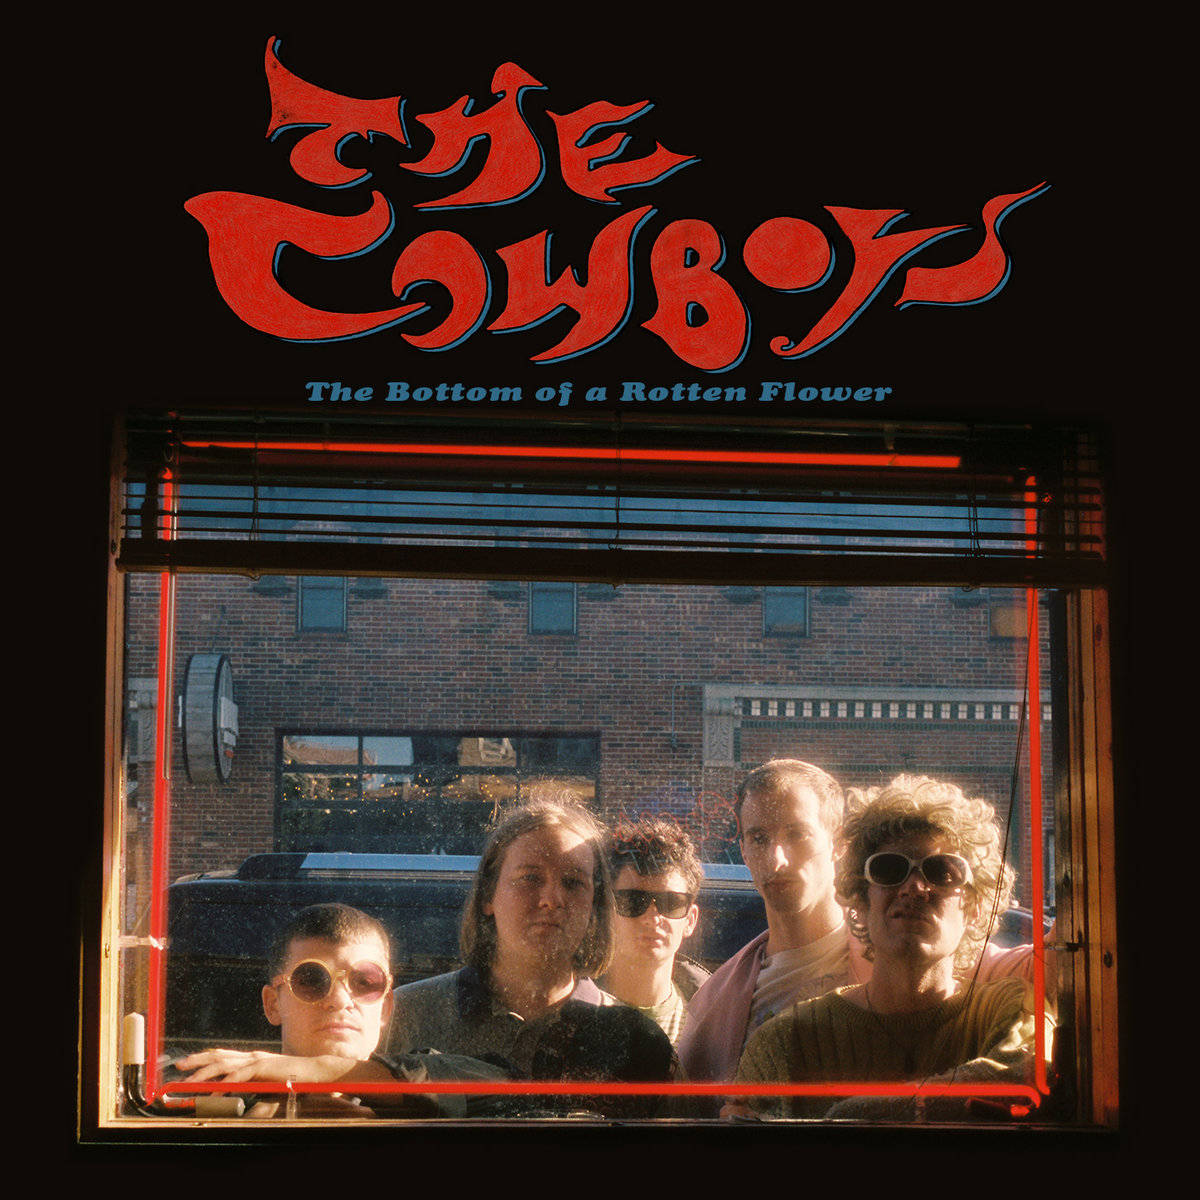 The Cowboys - The Bottom of a Rotten Flower LP